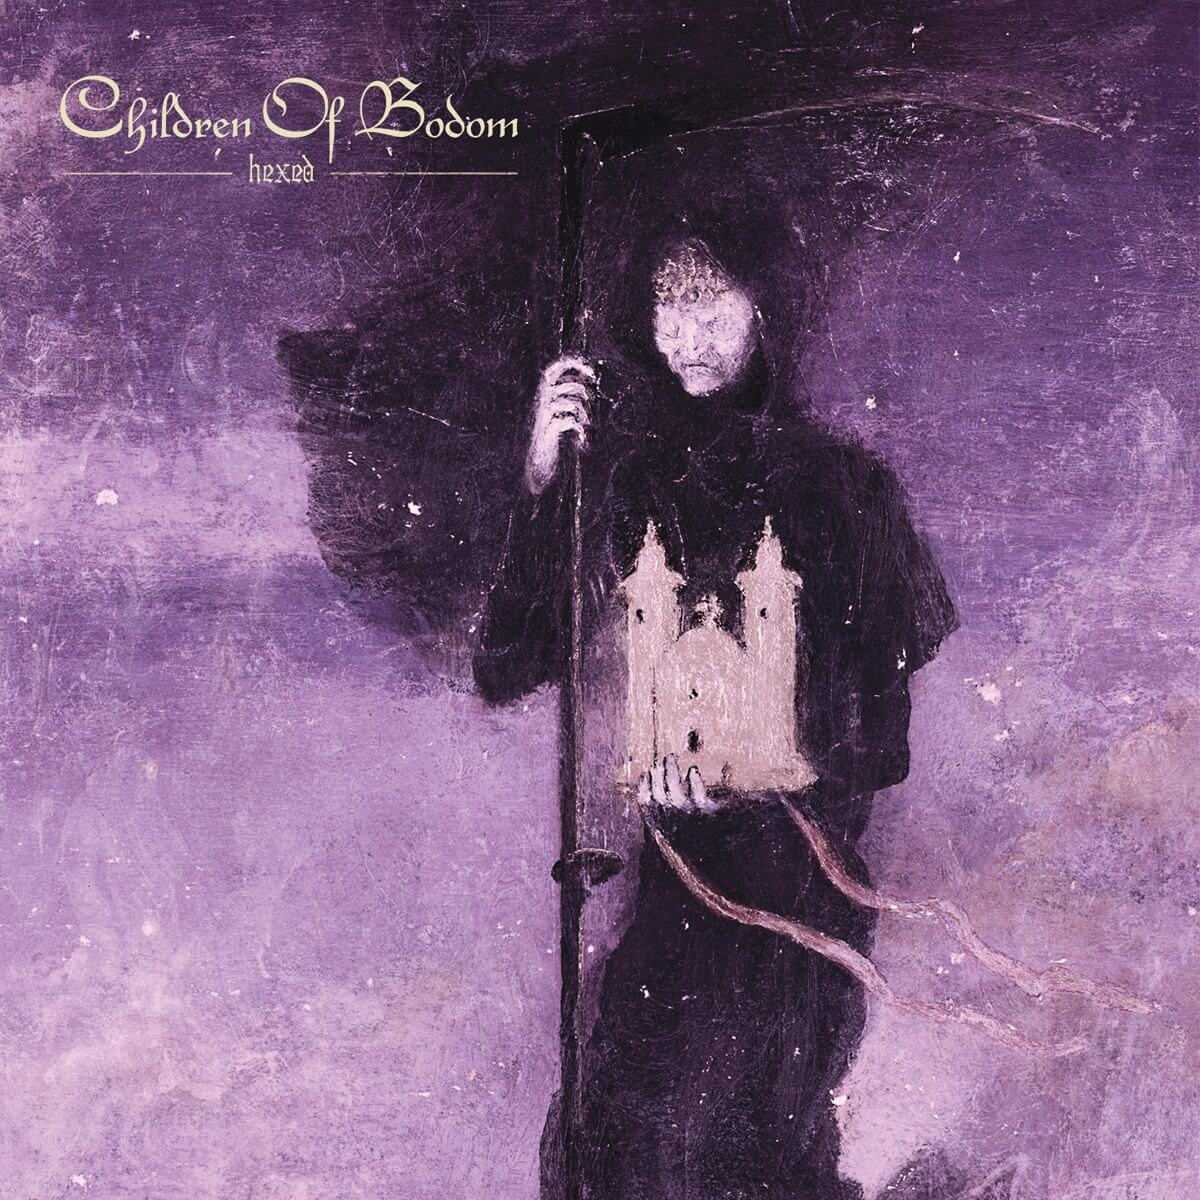 Children of Bodom 2019